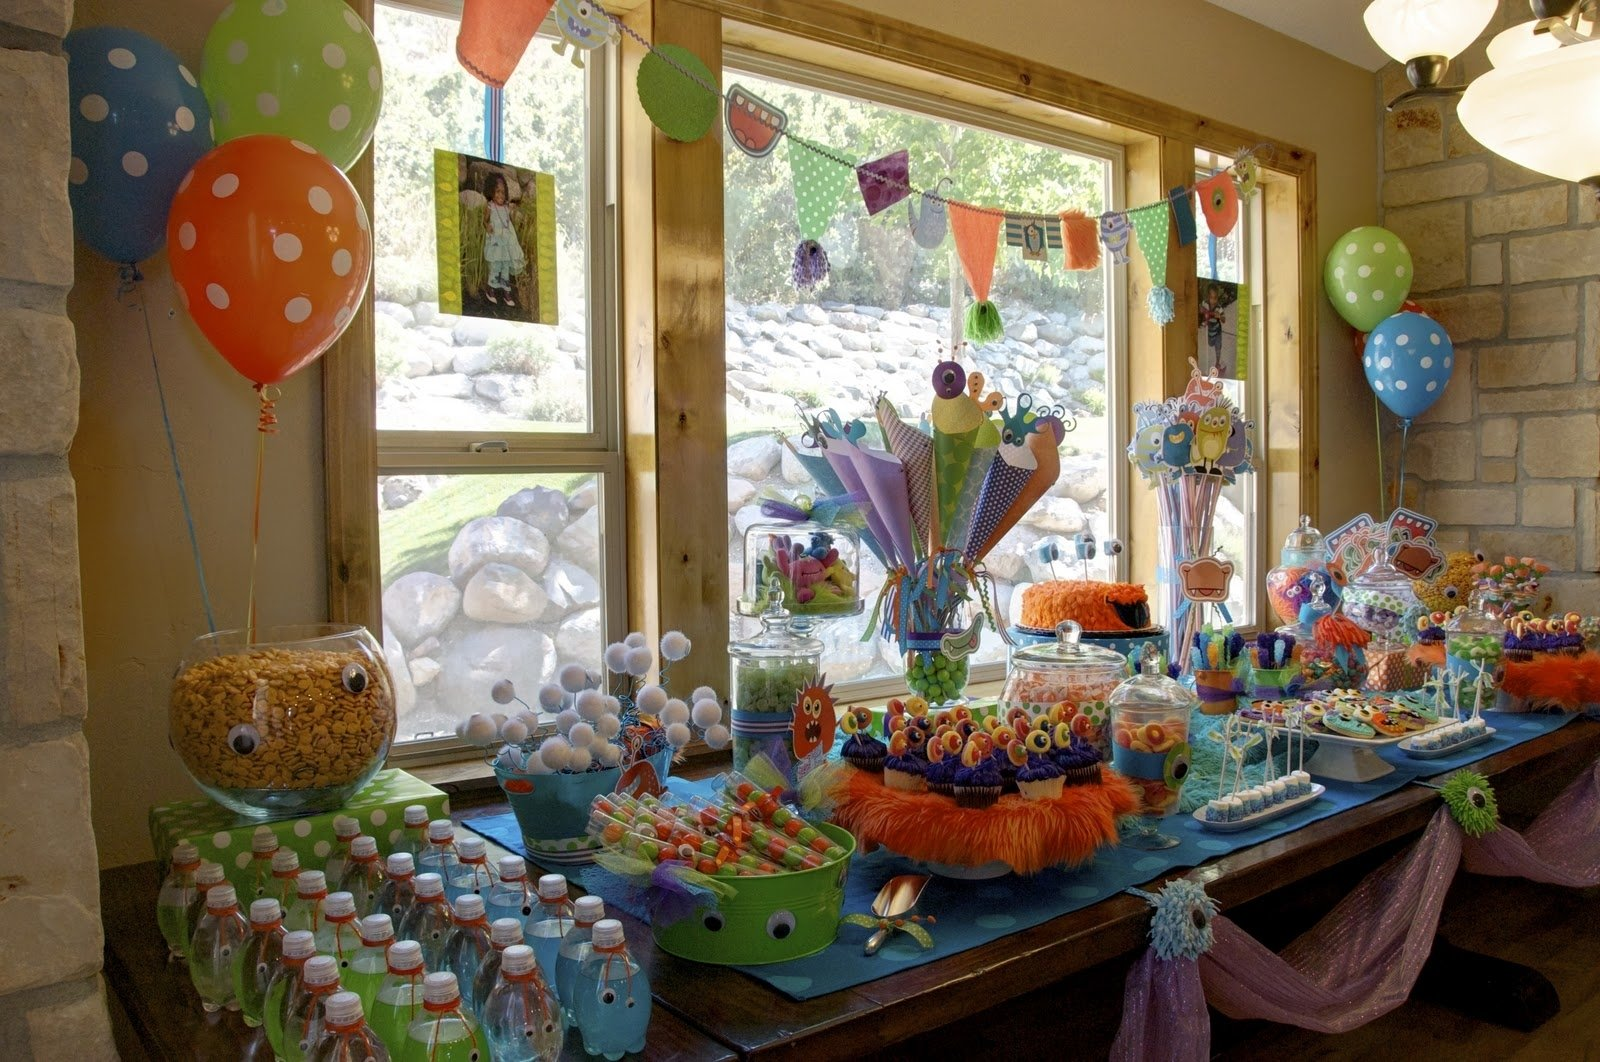 10 Stylish 14 Year Old Boy Birthday Party Ideas my friends birthday is in the winter and she wanteaes cause shes 16